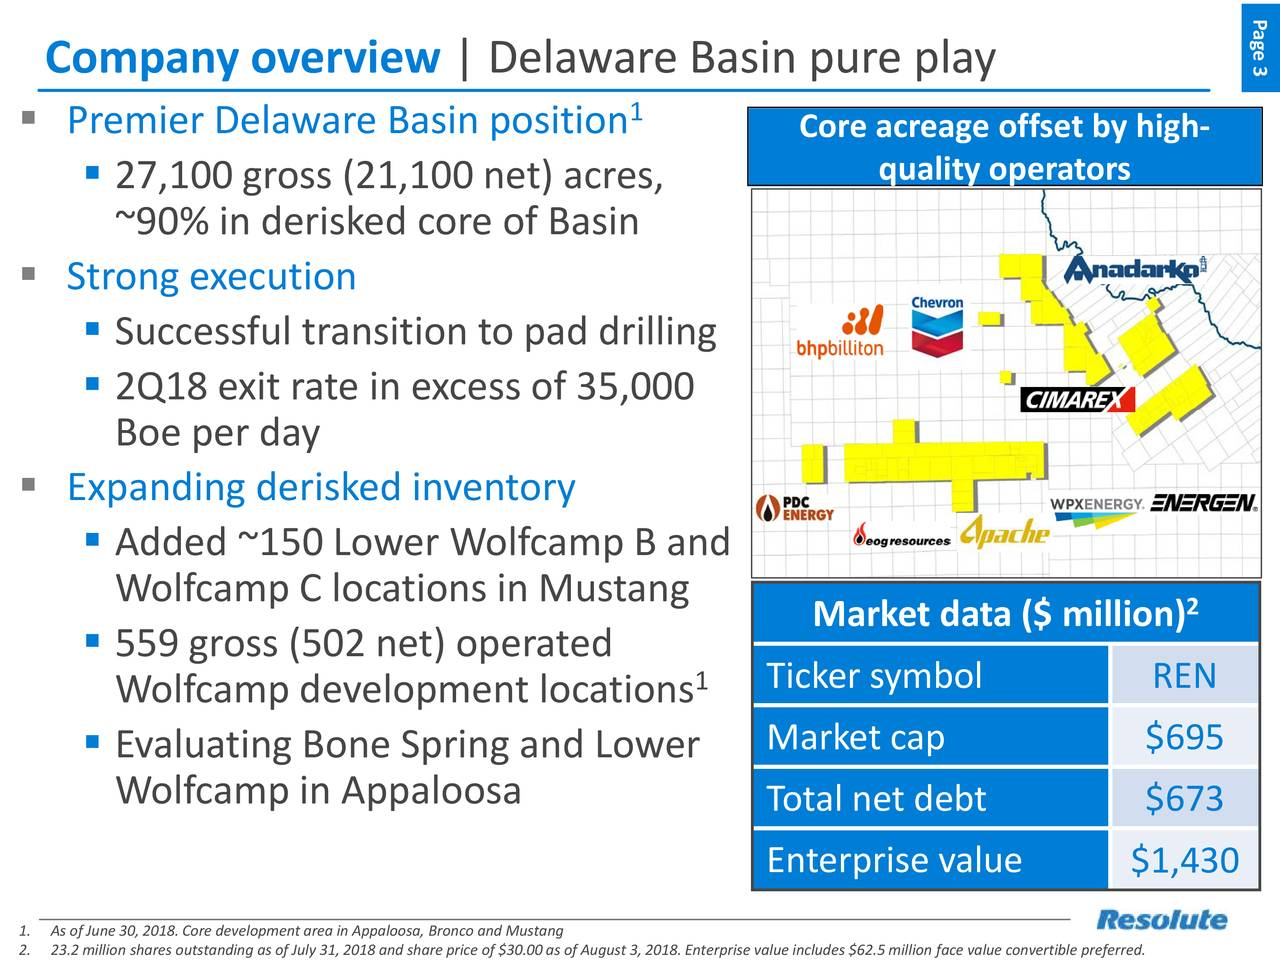 Company overview   Delaware Basin pure play 3 1  Premier Delaware Basin position Core acreage offset by high-  27,100 gross (21,100 net) acres, quality operators ~90% in derisked core of Basin  Strong execution  Successful transition to pad drilling  2Q18 exit rate in excess of 35,000 Boe per day  Expanding derisked inventory  Added ~150 Lower Wolfcamp B and Wolfcamp C locations in Mustang Market data ($ million) 2  559 gross (502 net) operated Wolfcamp development locations 1 Ticker symbol REN Market cap $695  Evaluating Bone Spring and Lower Wolfcamp in Appaloosa Total net debt $673 Enterprise value $1,430 1.As of June 30, 2018. Core development area in Appaloosa, Bronco and Mustang